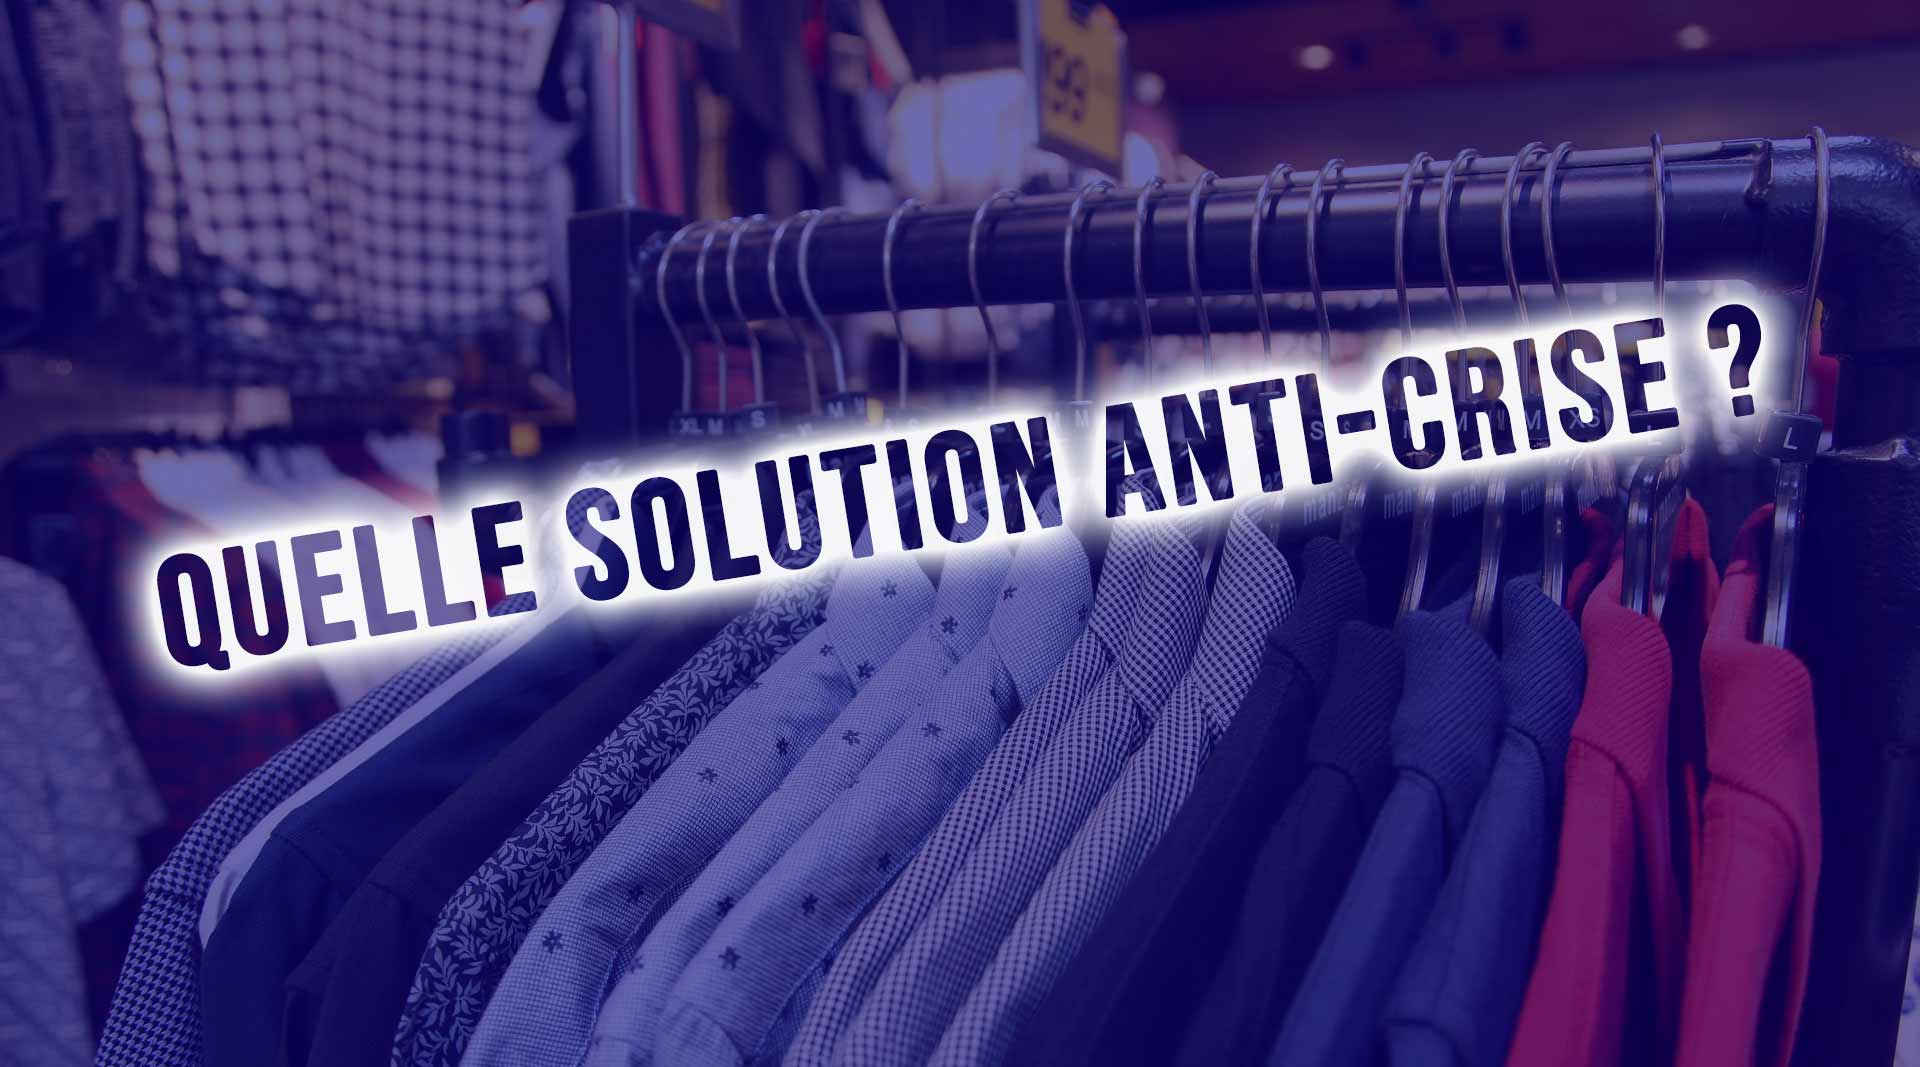 Magasin fermé ? Quelle solution anti-crise ?